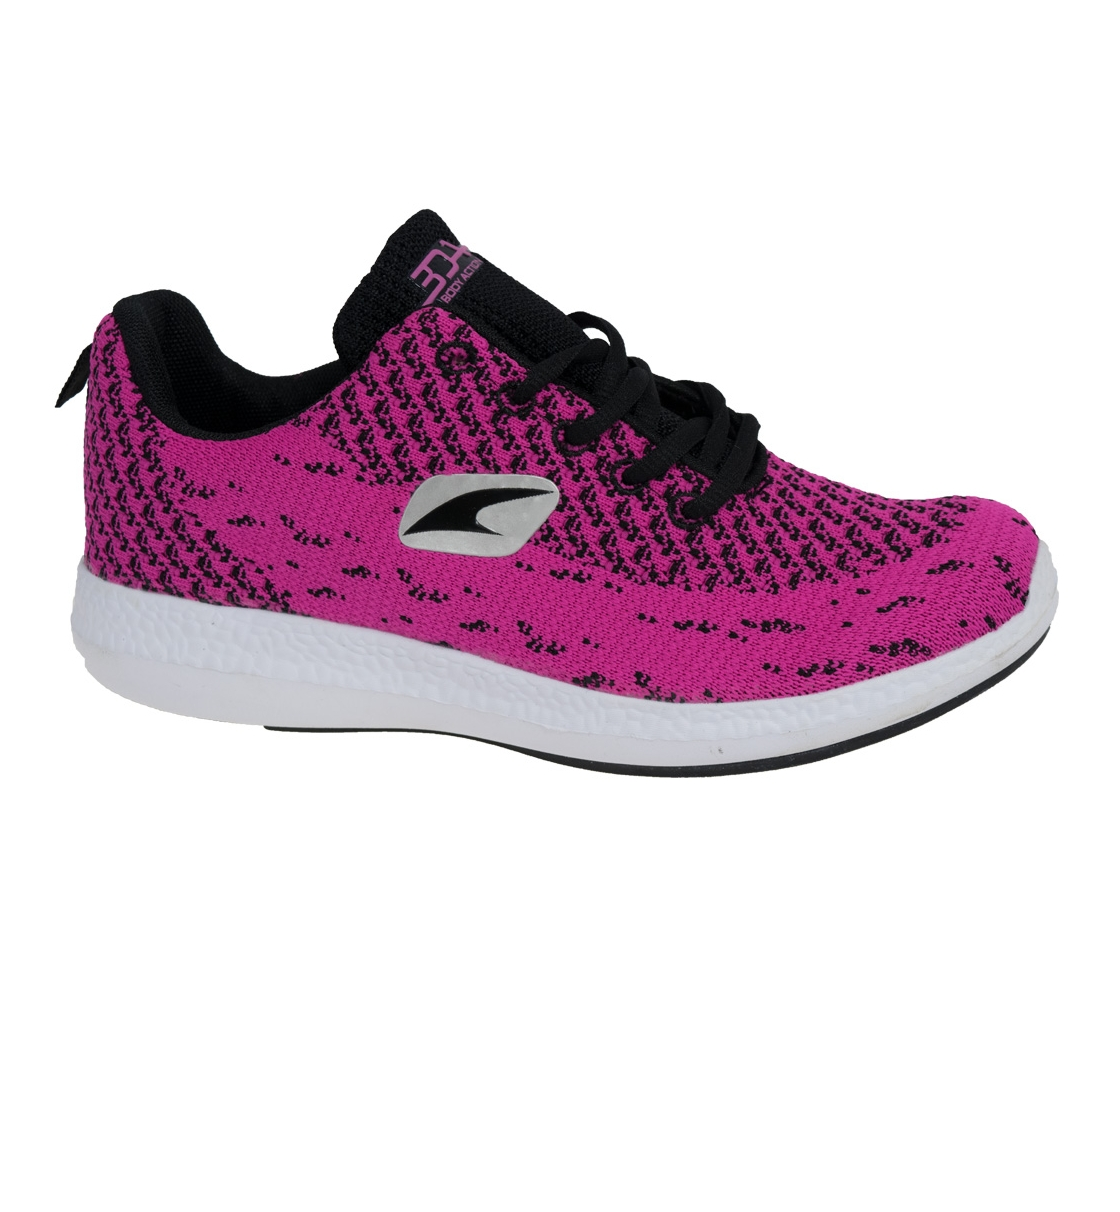 Body Action Γυναικείο Παπούτσι Μόδας Sports Shoes 091709